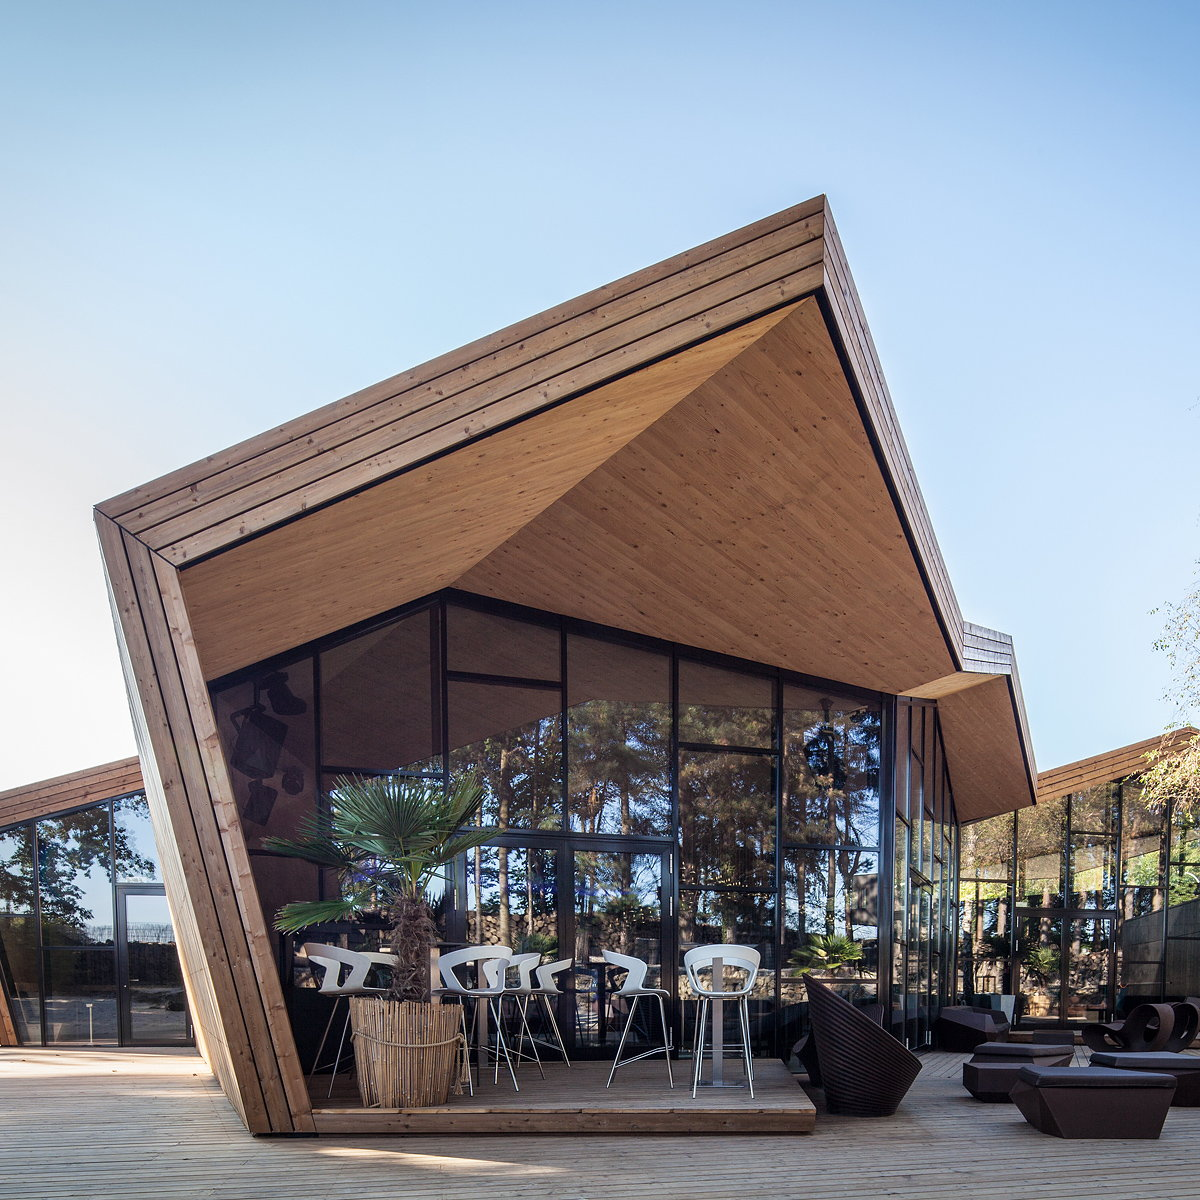 Boos Beach Club Restaurant by Metaform